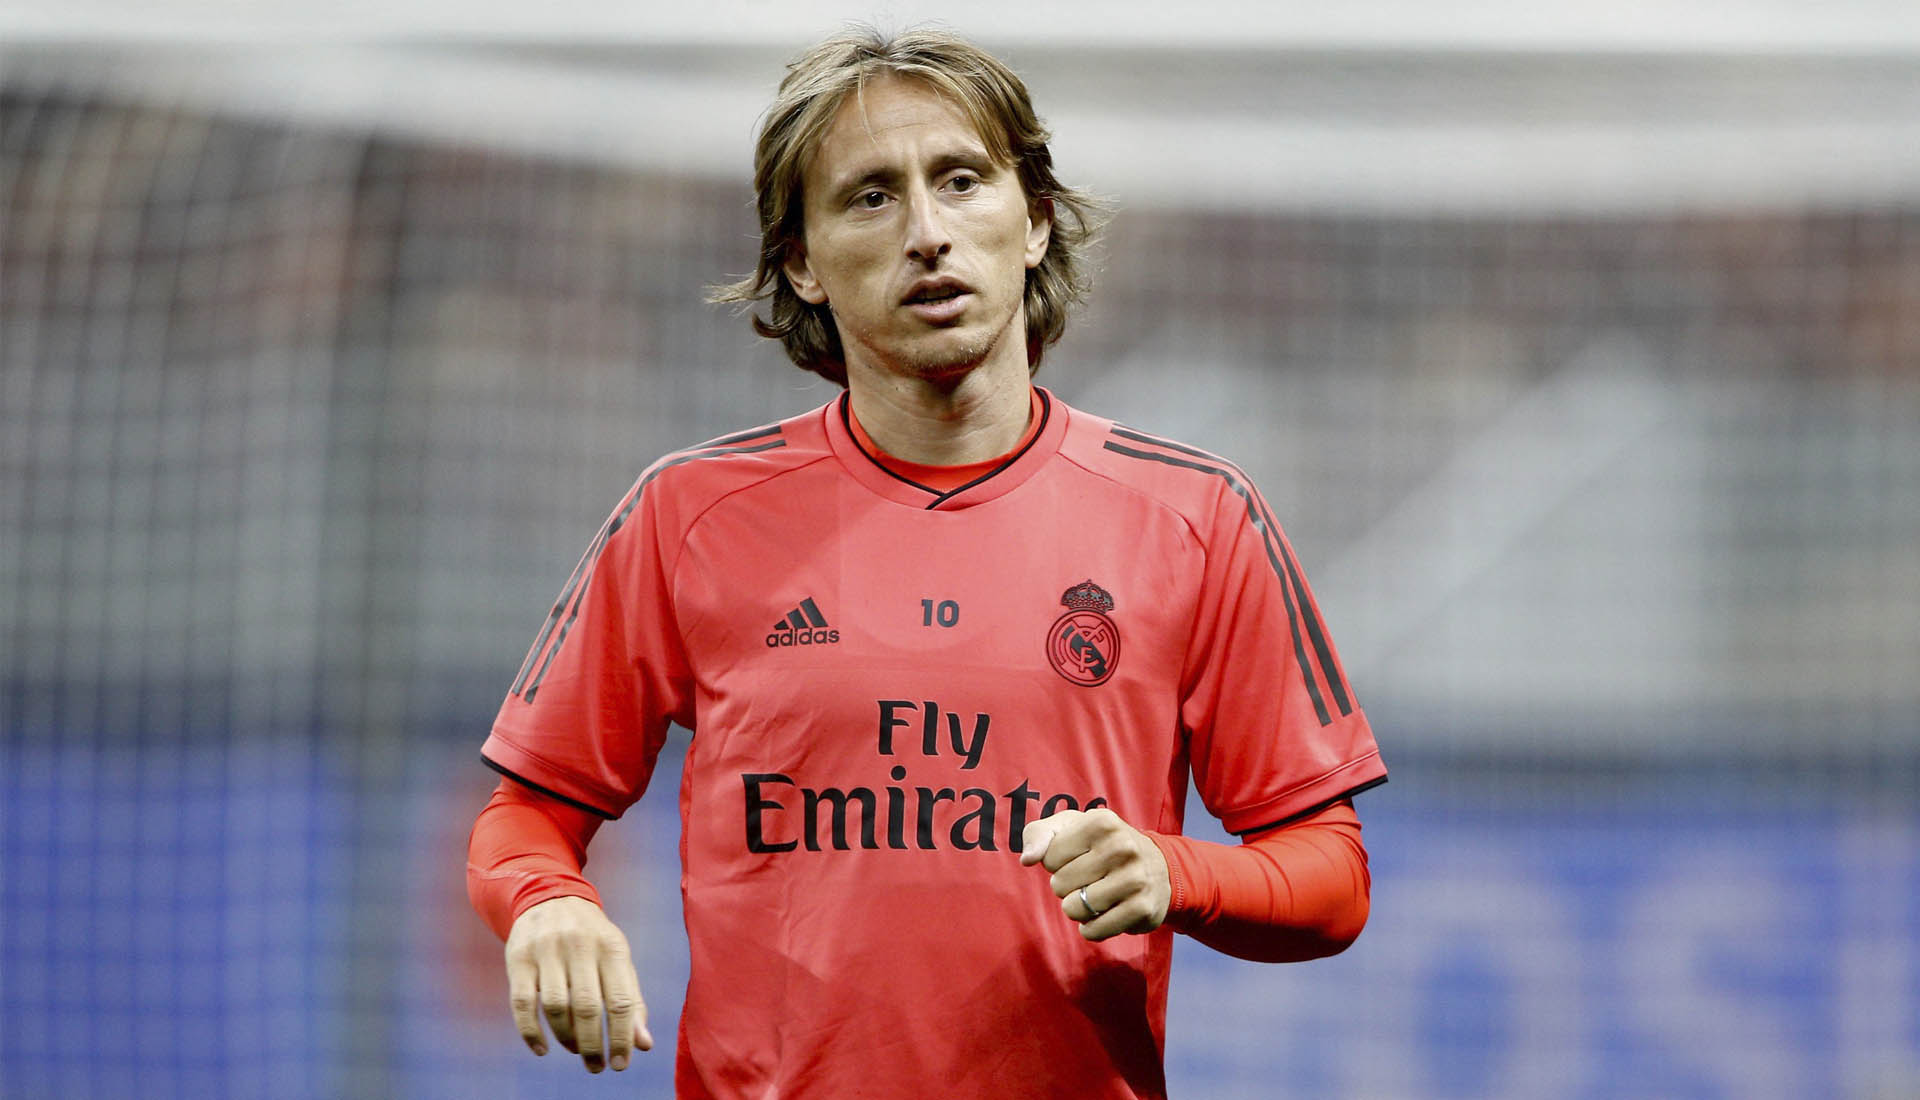 brand new 0f991 4d475 Luka Modric Trains in Special Edition 'Best Player ...